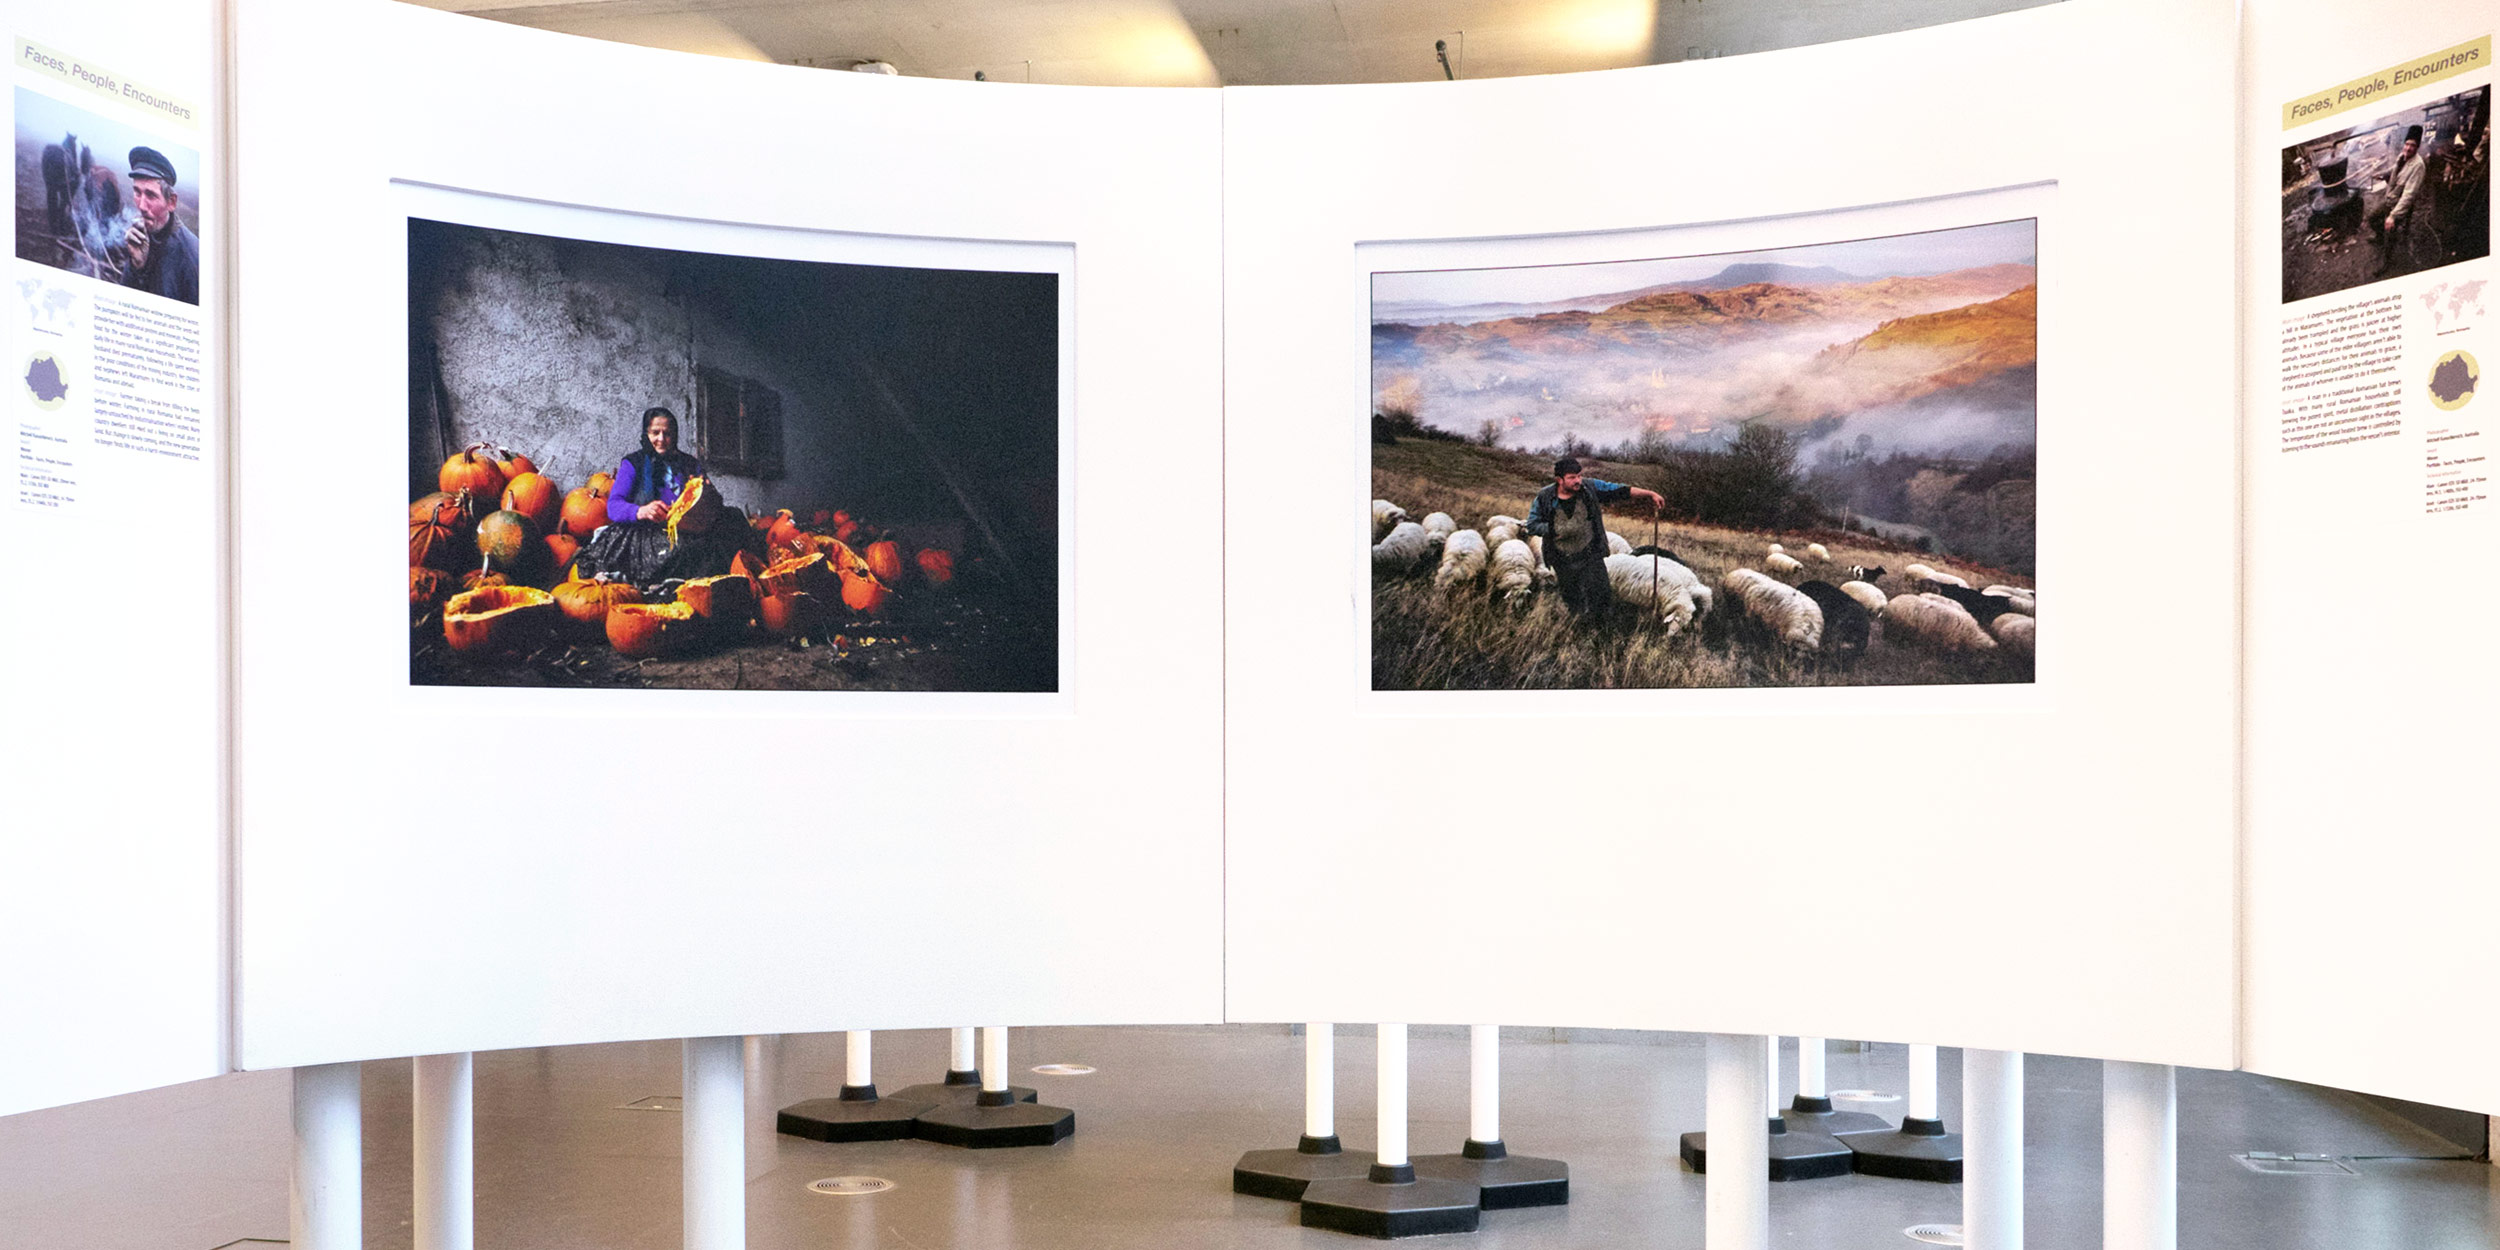 Winning portfolio displayed at the Travel Photographer Of The Year in London